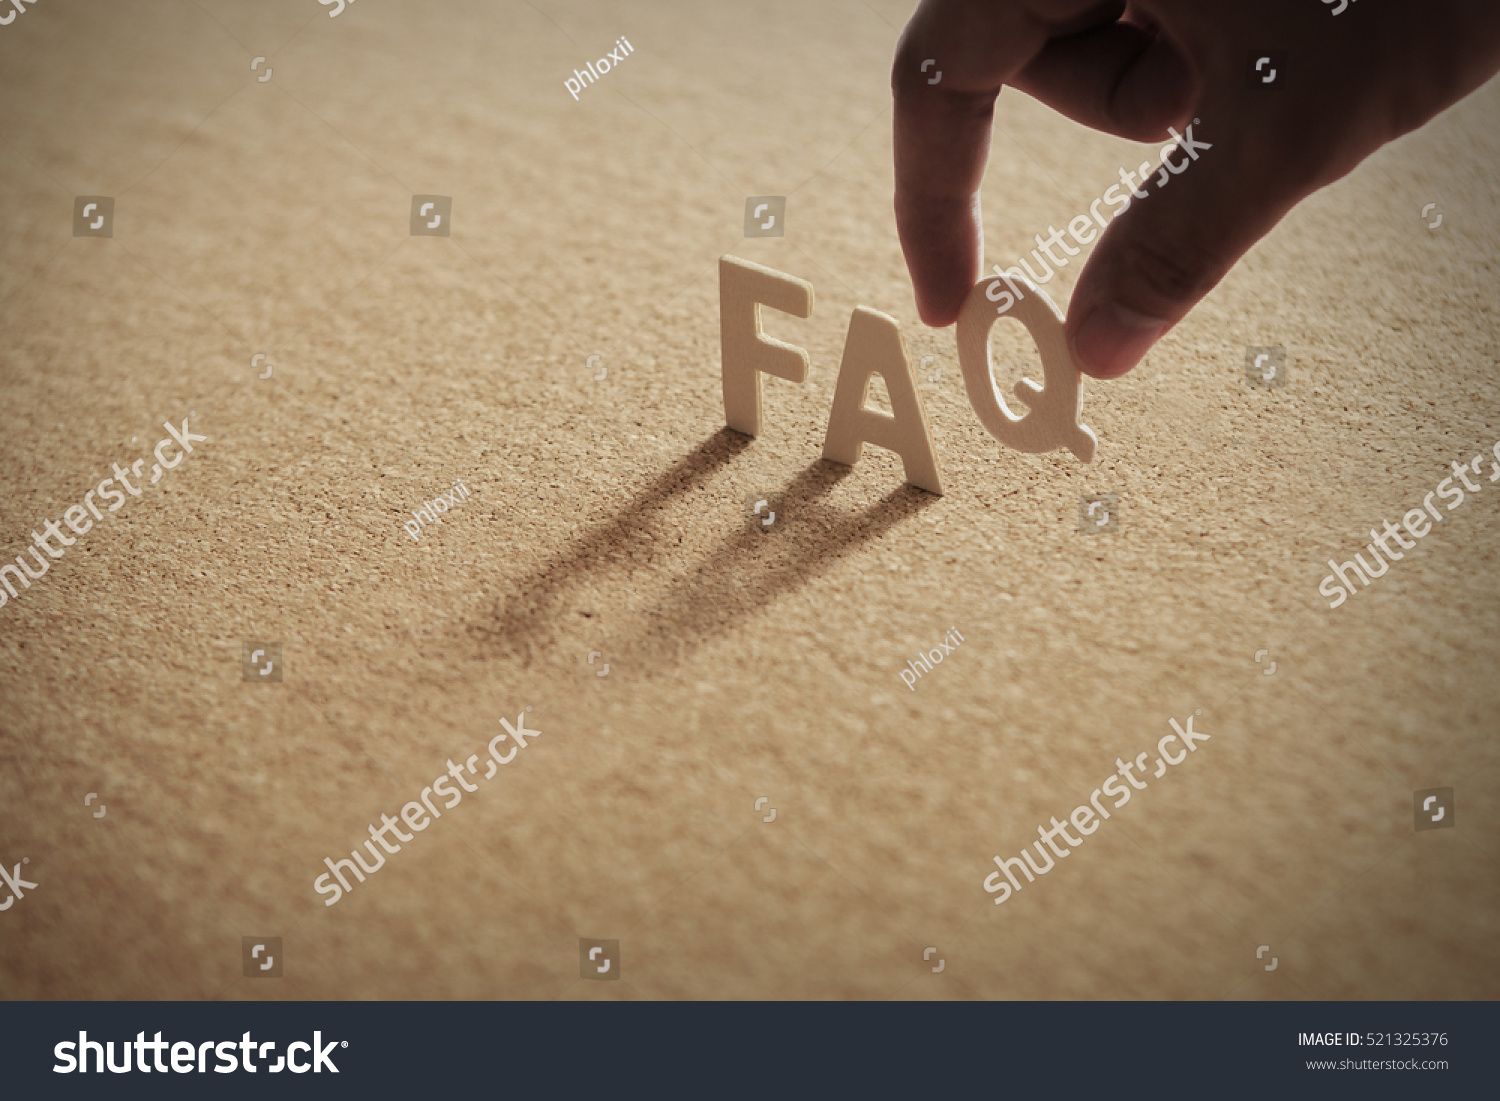 FAQ wood word on compressed board,cork board with human's finger at Q letter